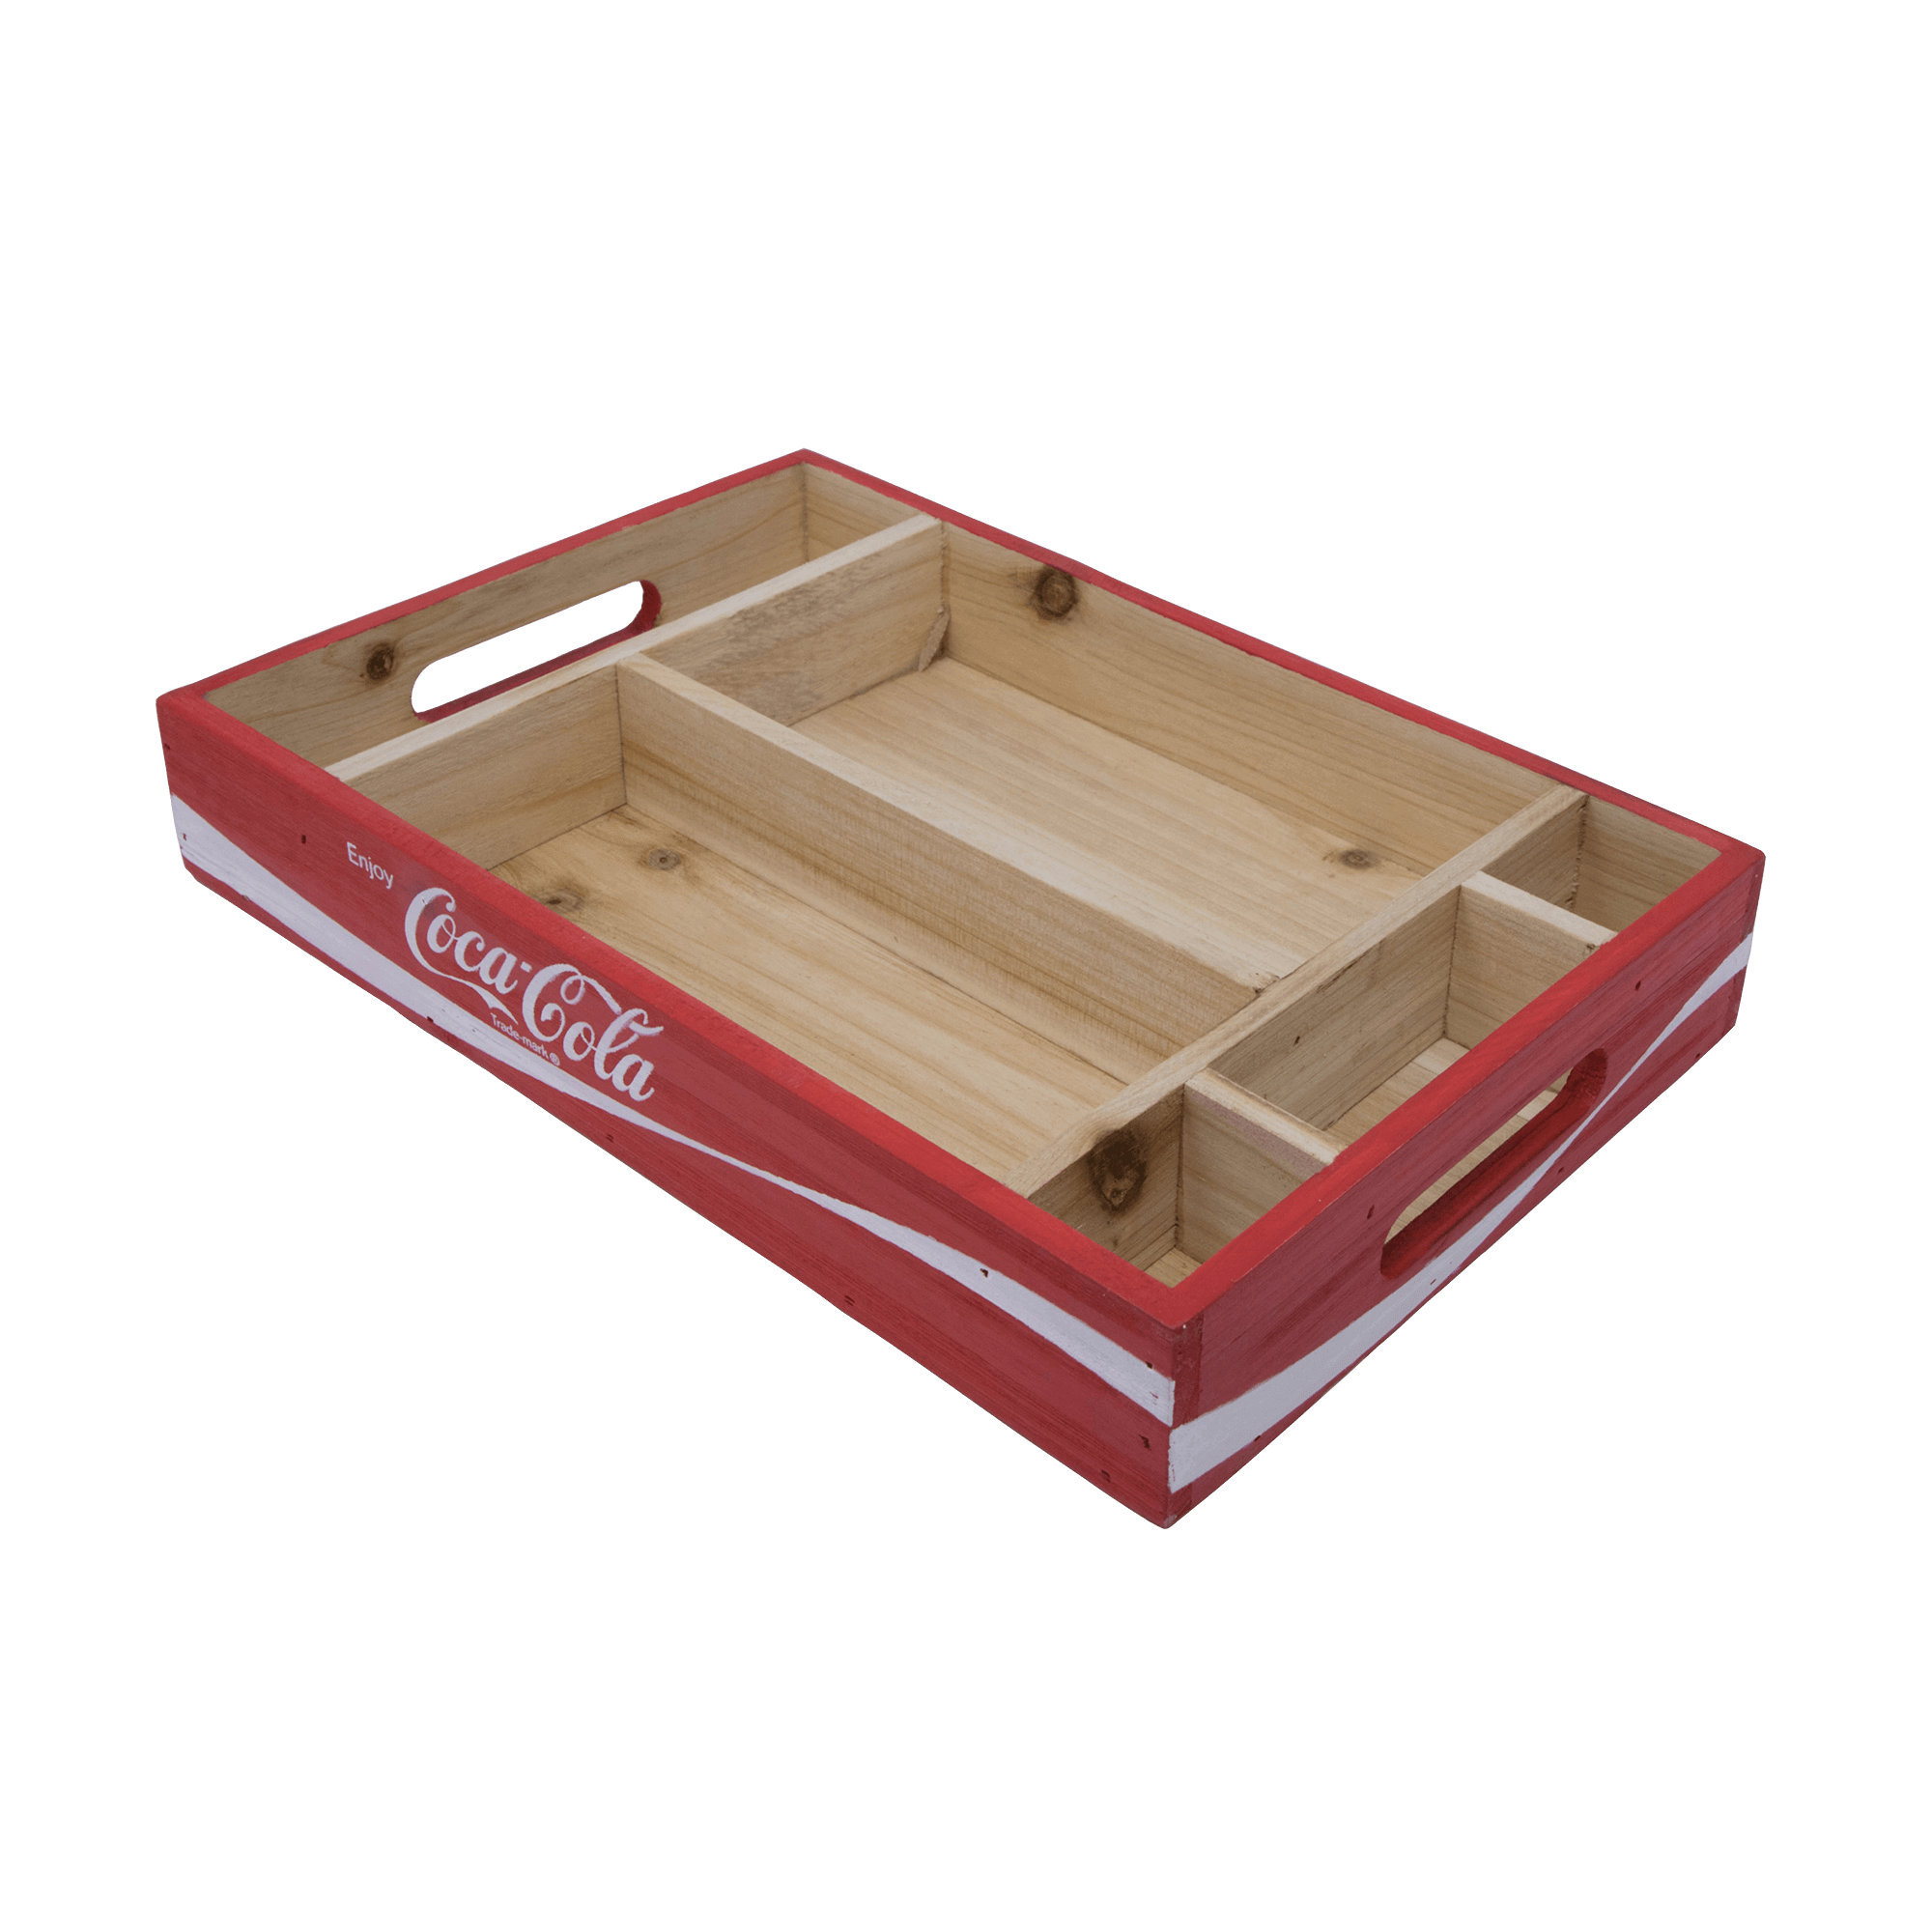 Vintage coca cola crate png. Divided tray coke store